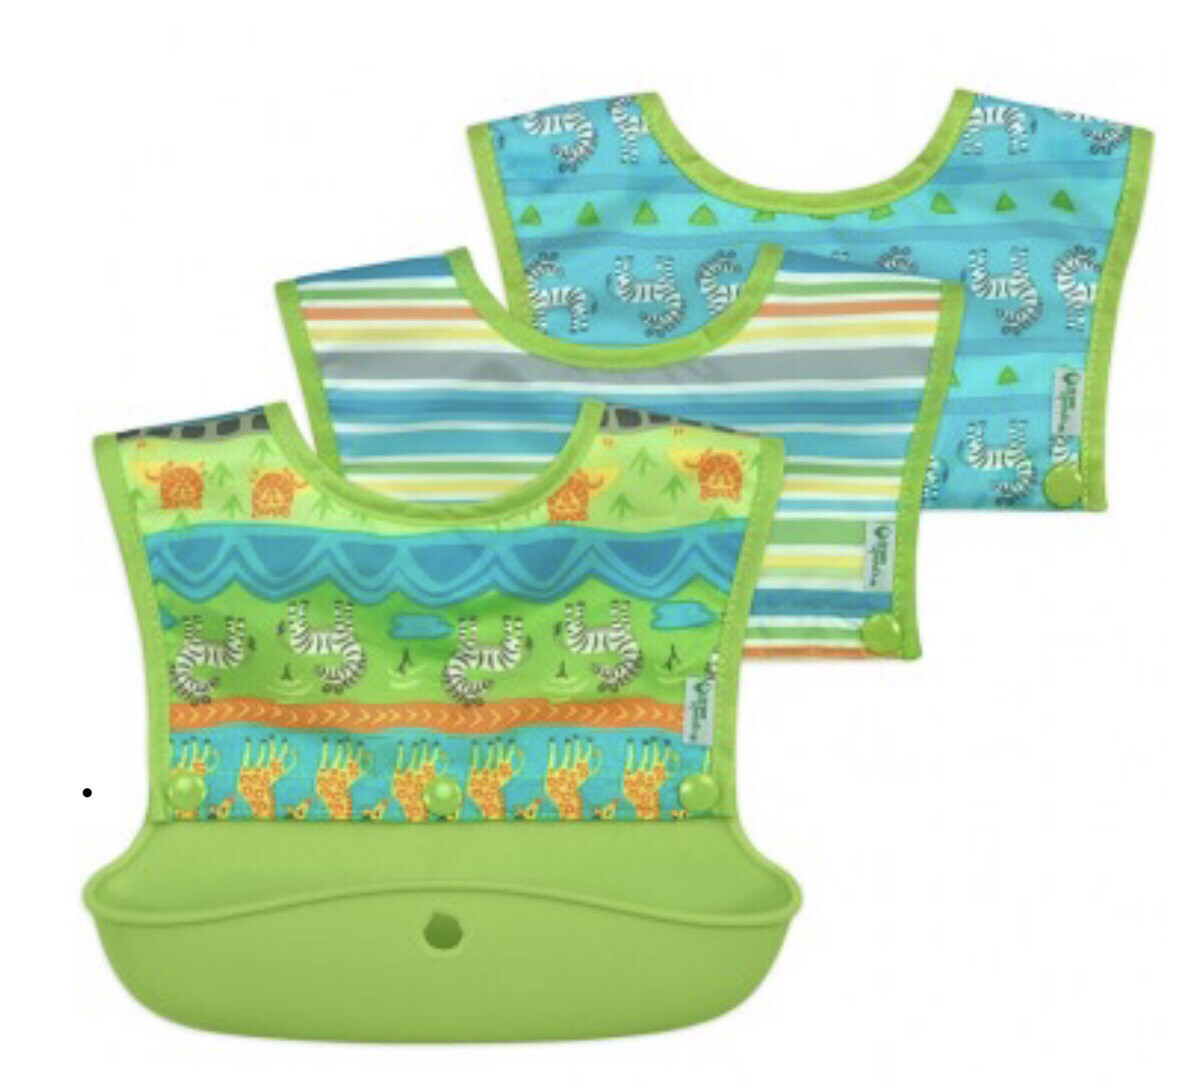 Green Sprouts Snap & Go Silicone Food Catcher Bib